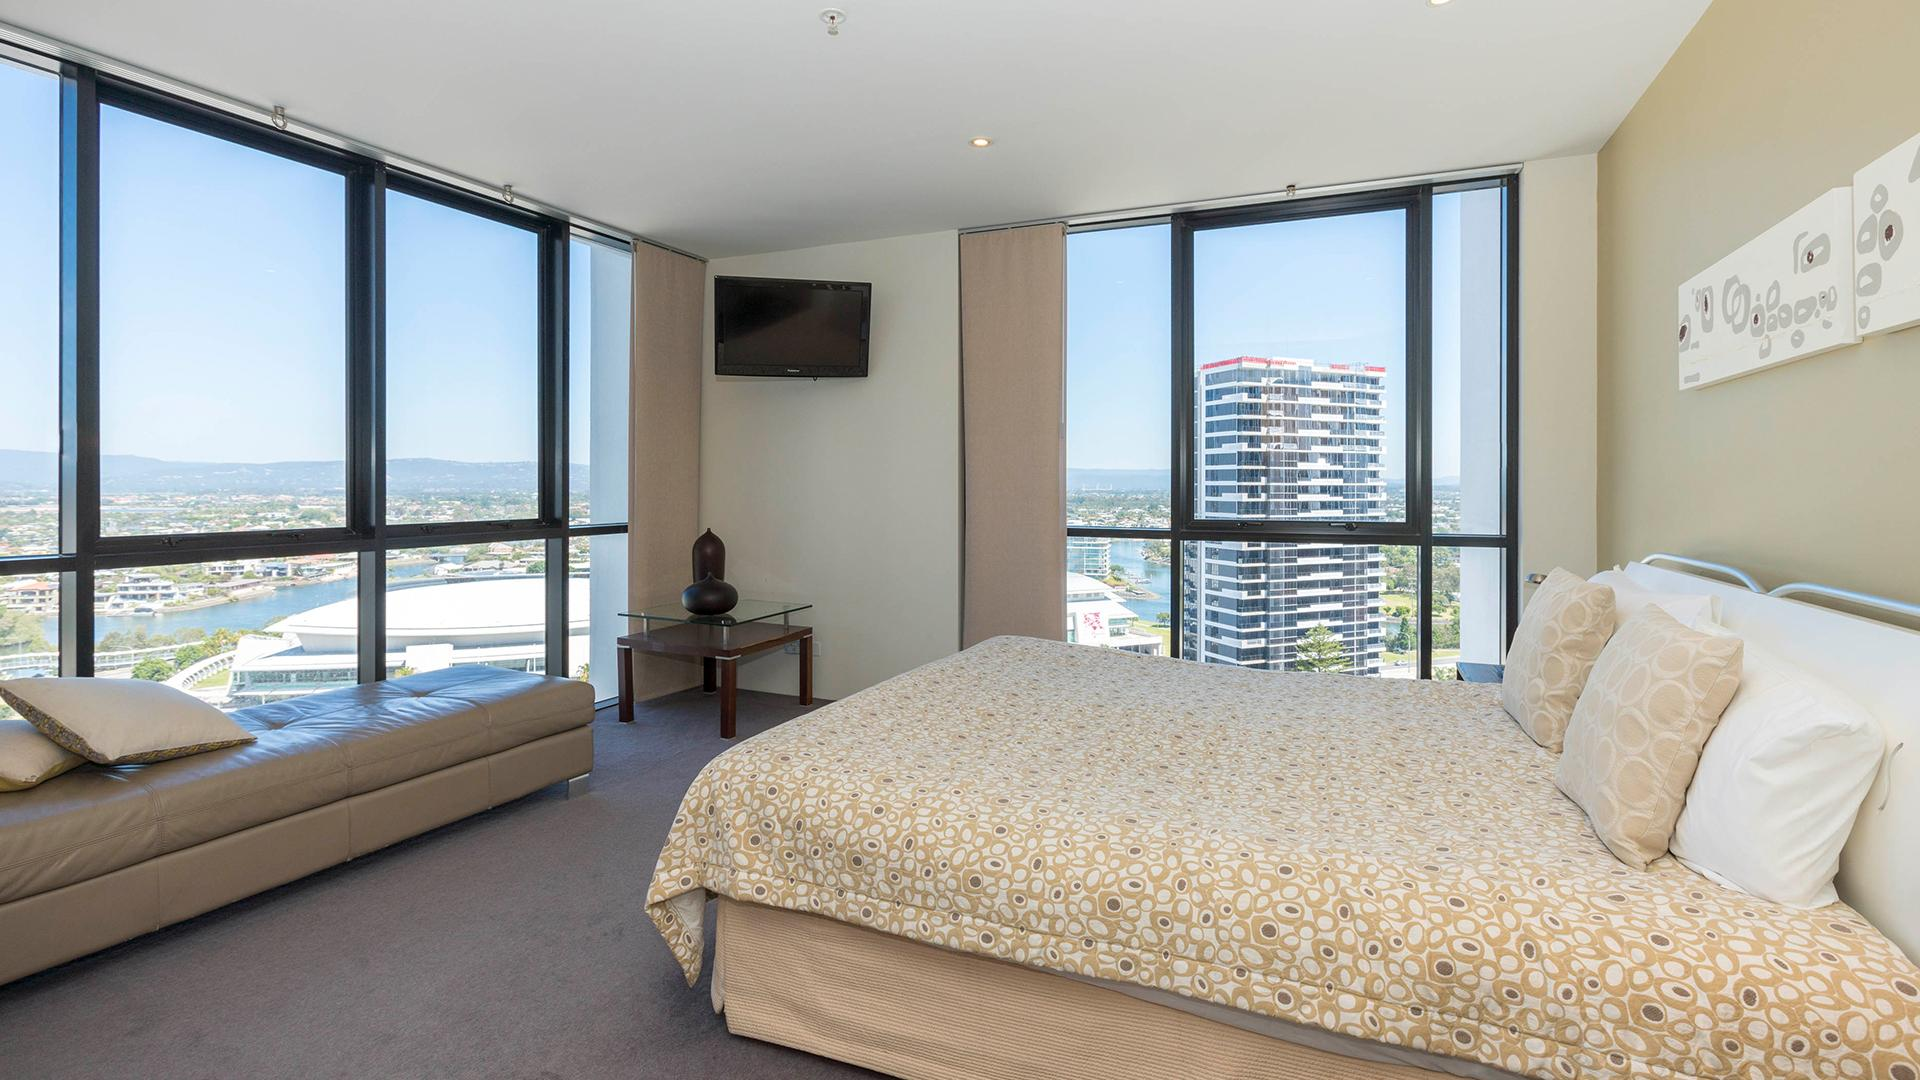 Three-Bedroom Ocean-View Apartment image 1 at Aria Apartments  by City of Gold Coast, Queensland, Australia